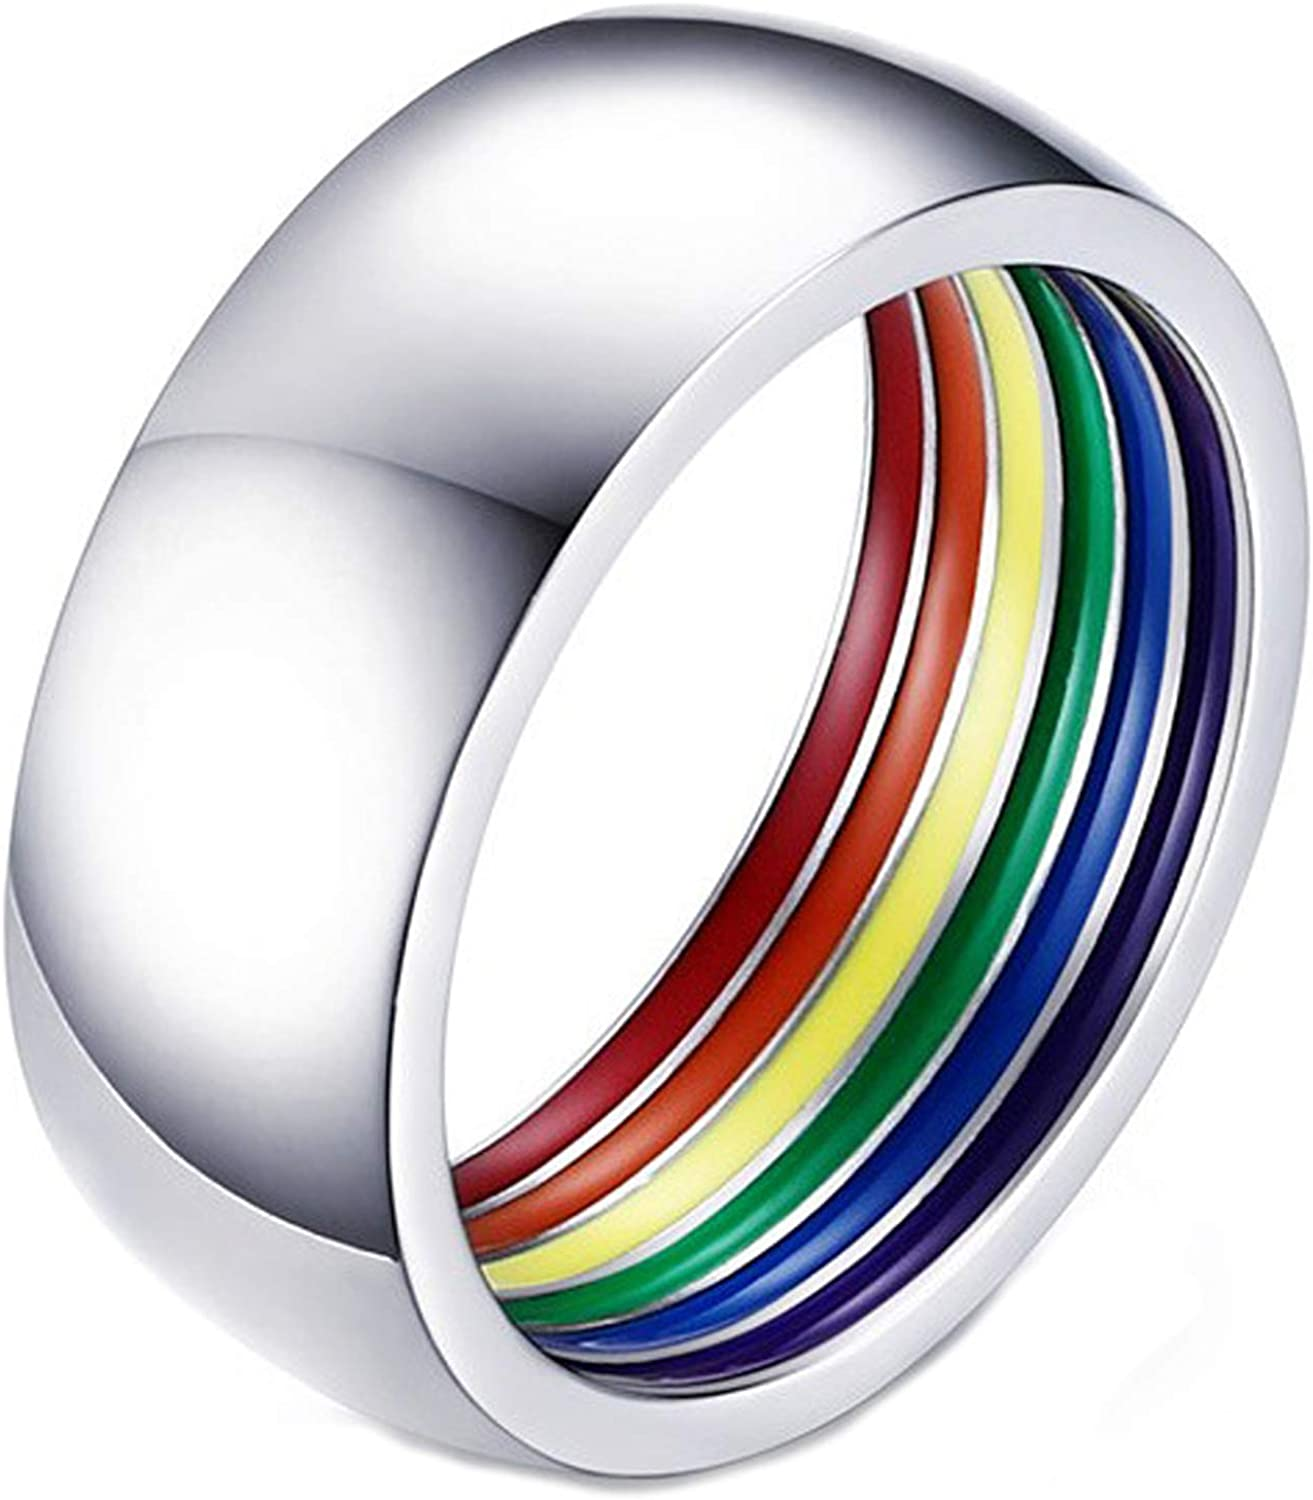 Nanafast 8mm LGBT Gay Pride Ring Rainbow Enamel Stainless Steel LGBTQ Bands for Men